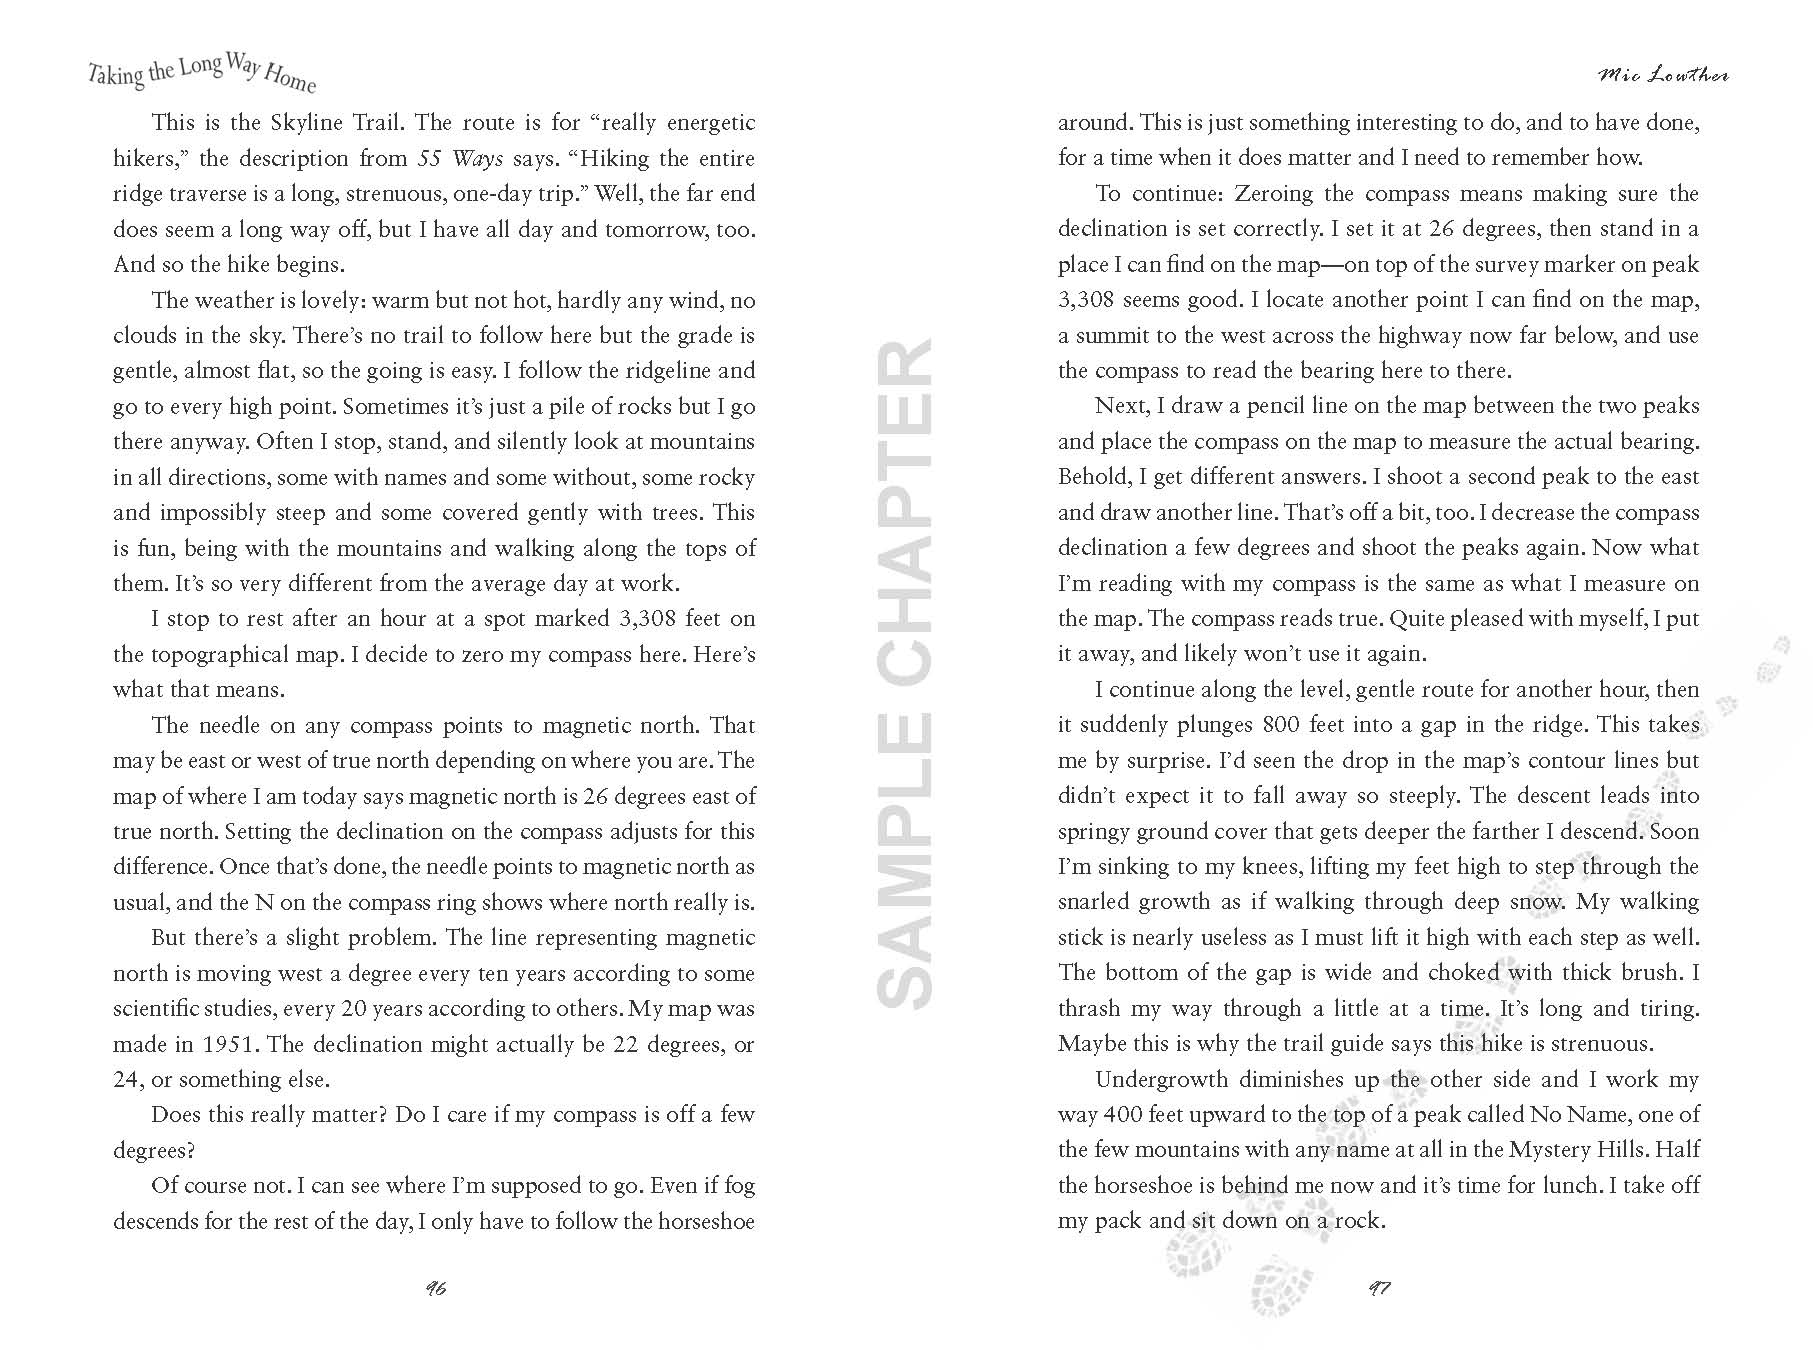 Taking The Long Way Home sample chapter pg 7 & 8